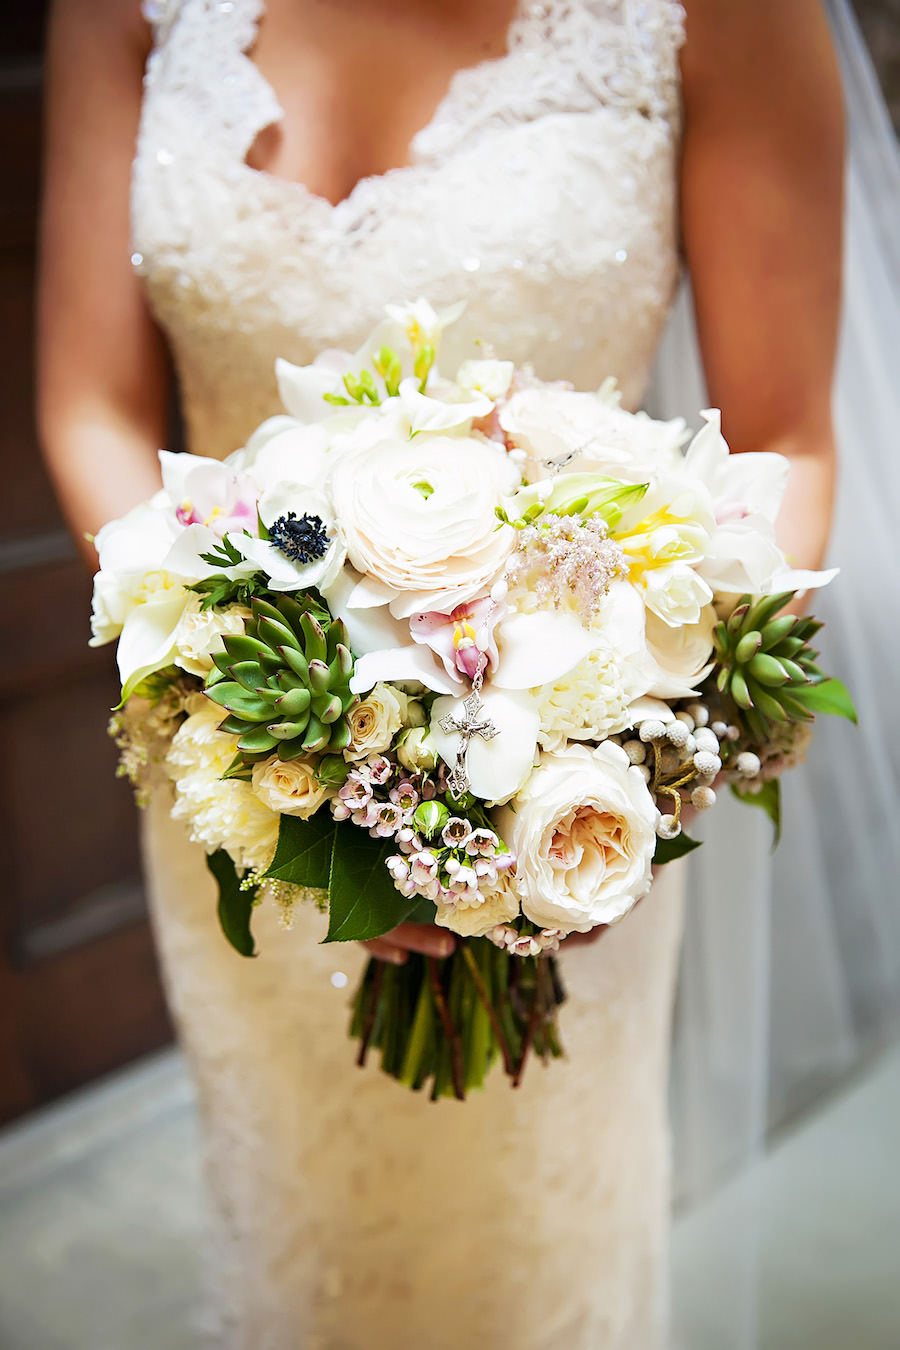 Pastel White and Pink Bridal Wedding Bouquet with Peonies and Succulents